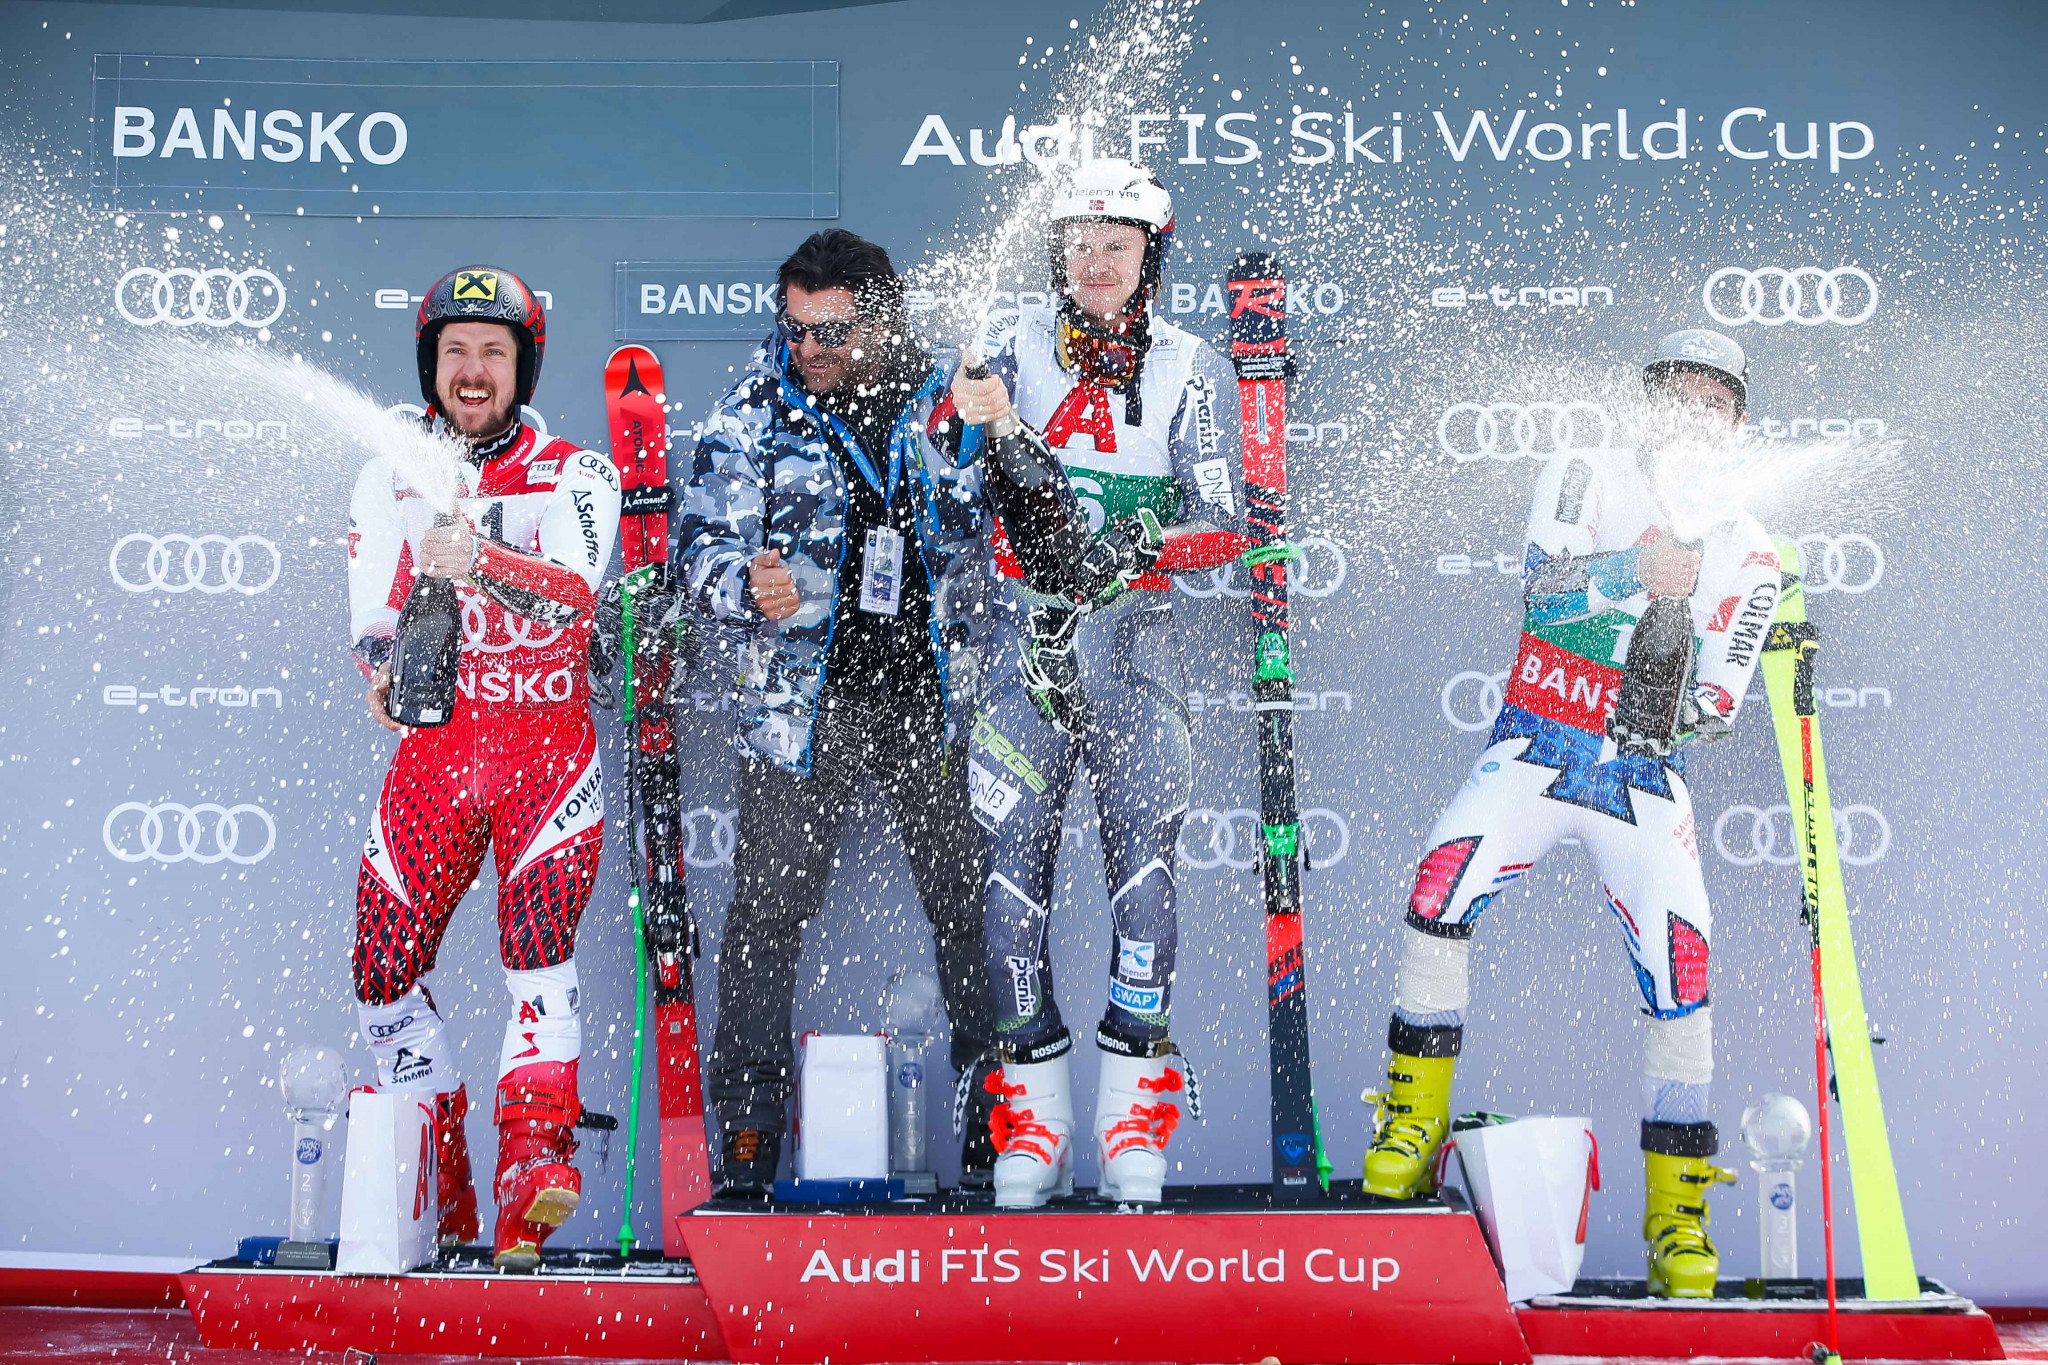 Kristoffersen gains first Alpine Skiing World Cup win of the season in Bansko giant slalom